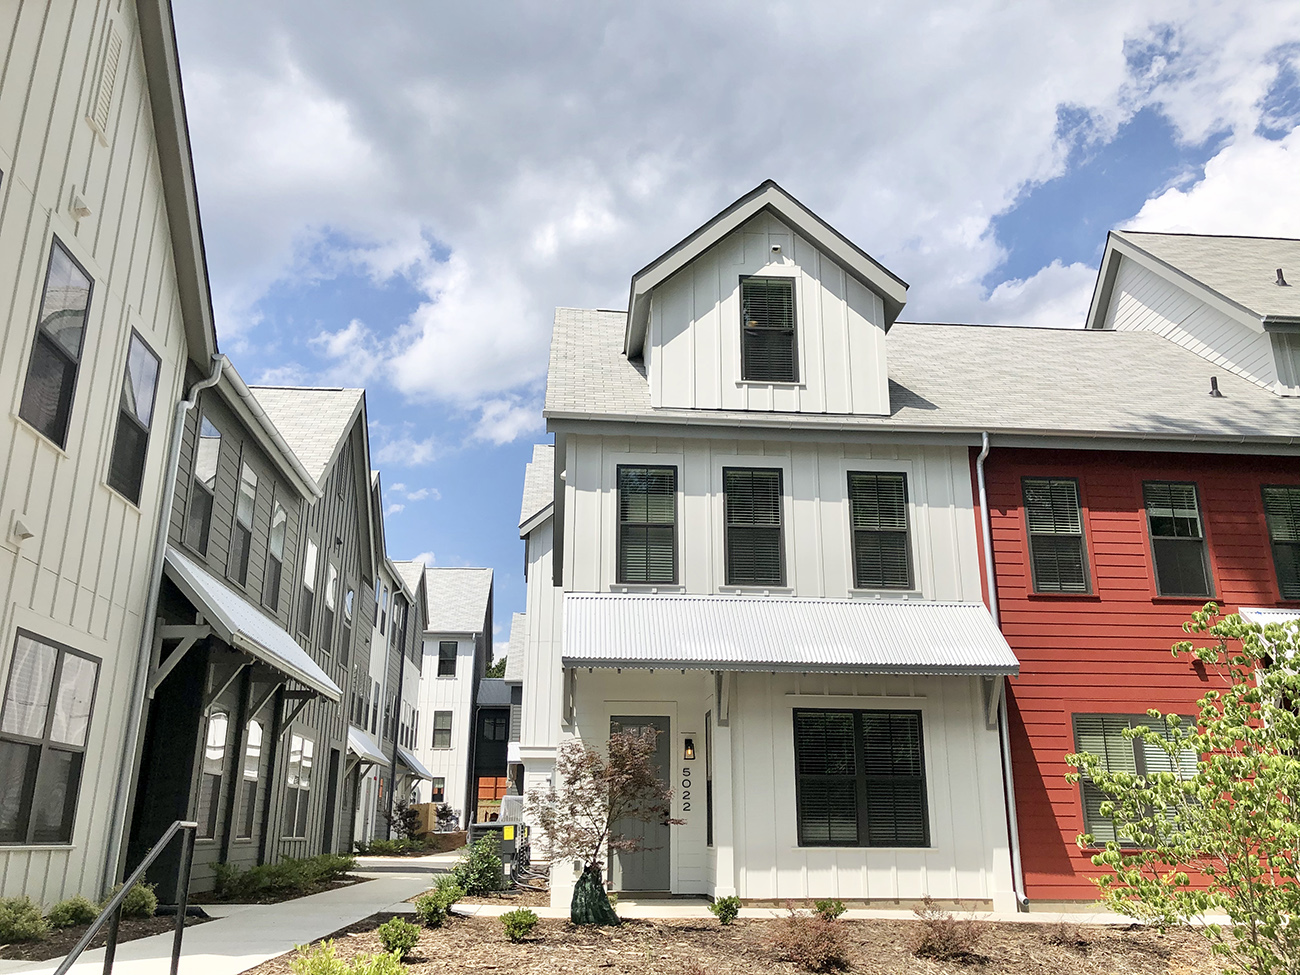 Charlotte's first 'pocket community' now leasing townhomes near Plaza Midwood